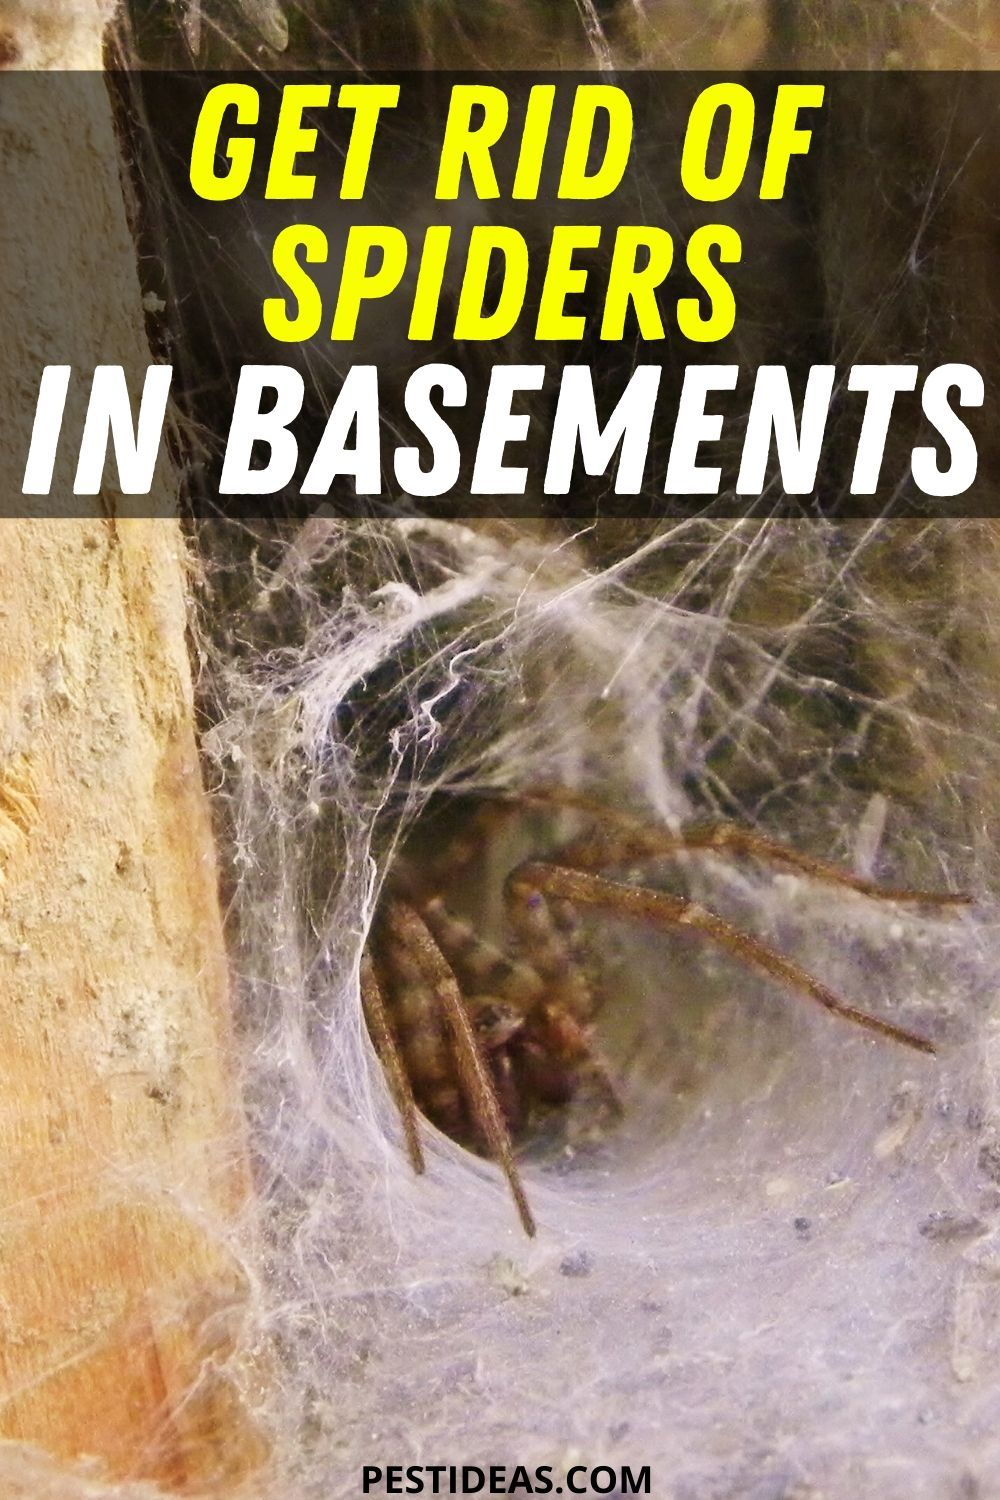 Pin on Get Rid of Spiders